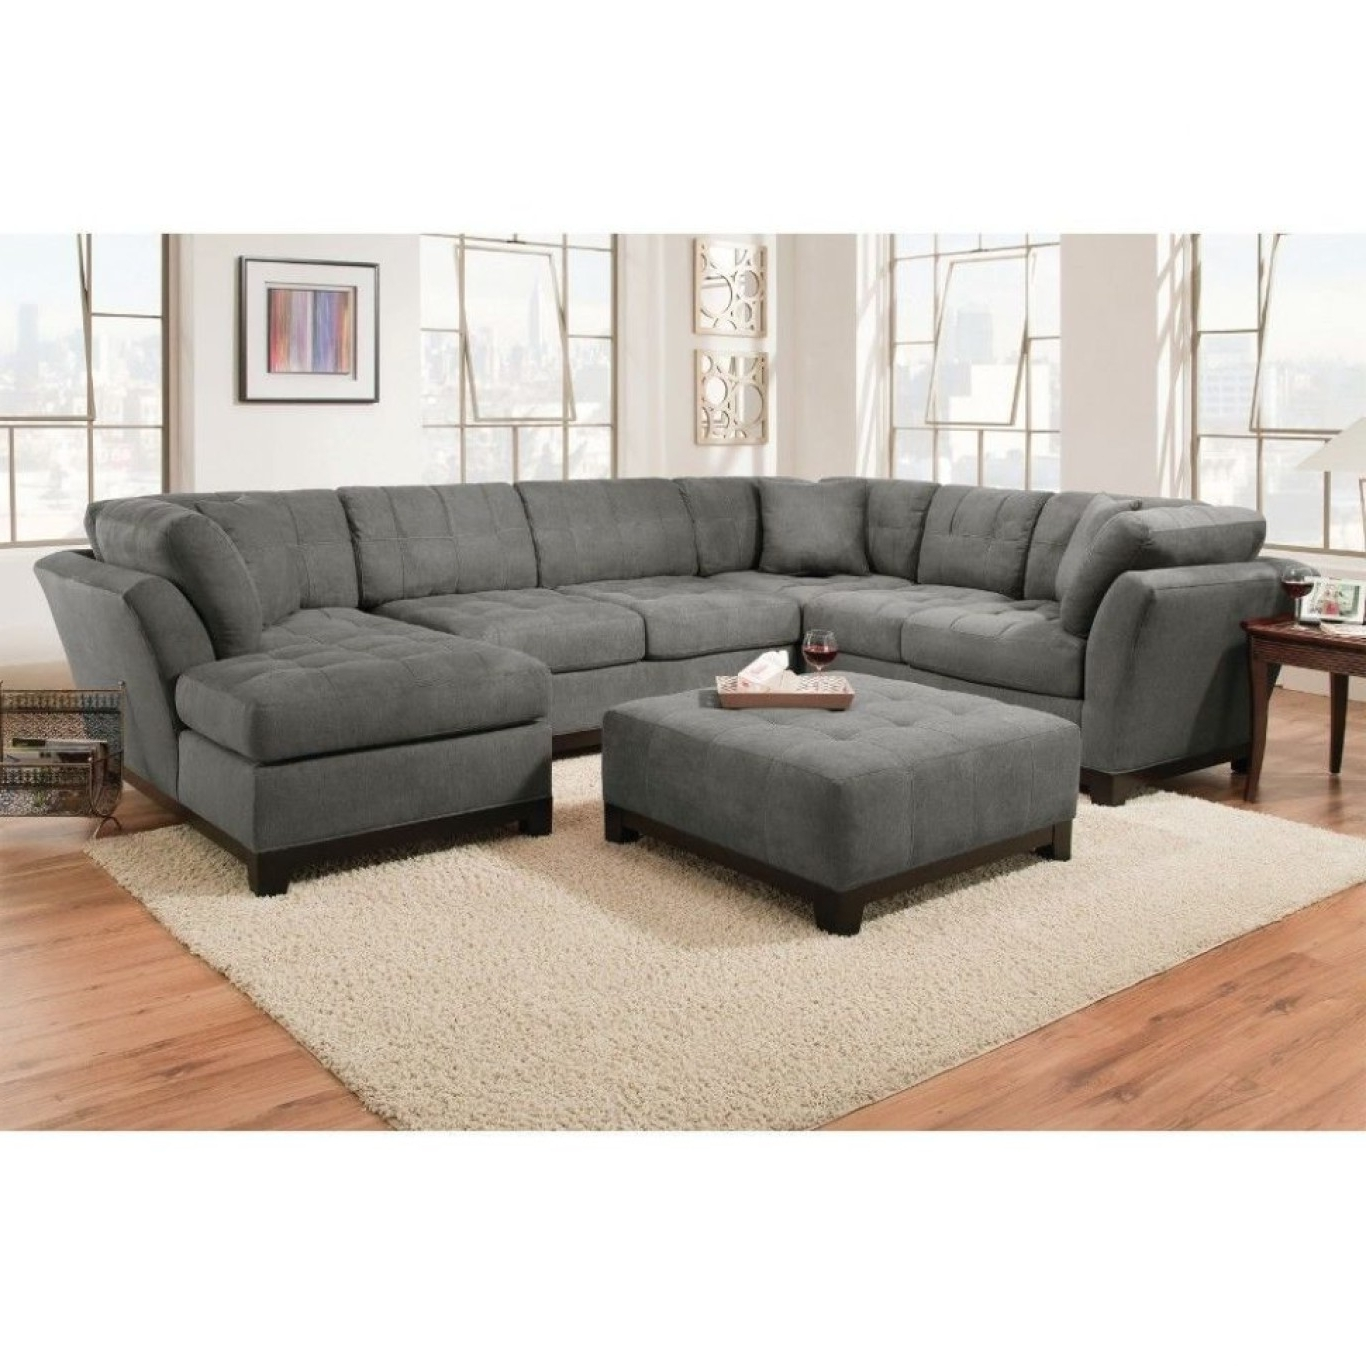 Furniture Row Sectional Sofas Throughout Well Known Furniture Row Sectionals (View 7 of 15)